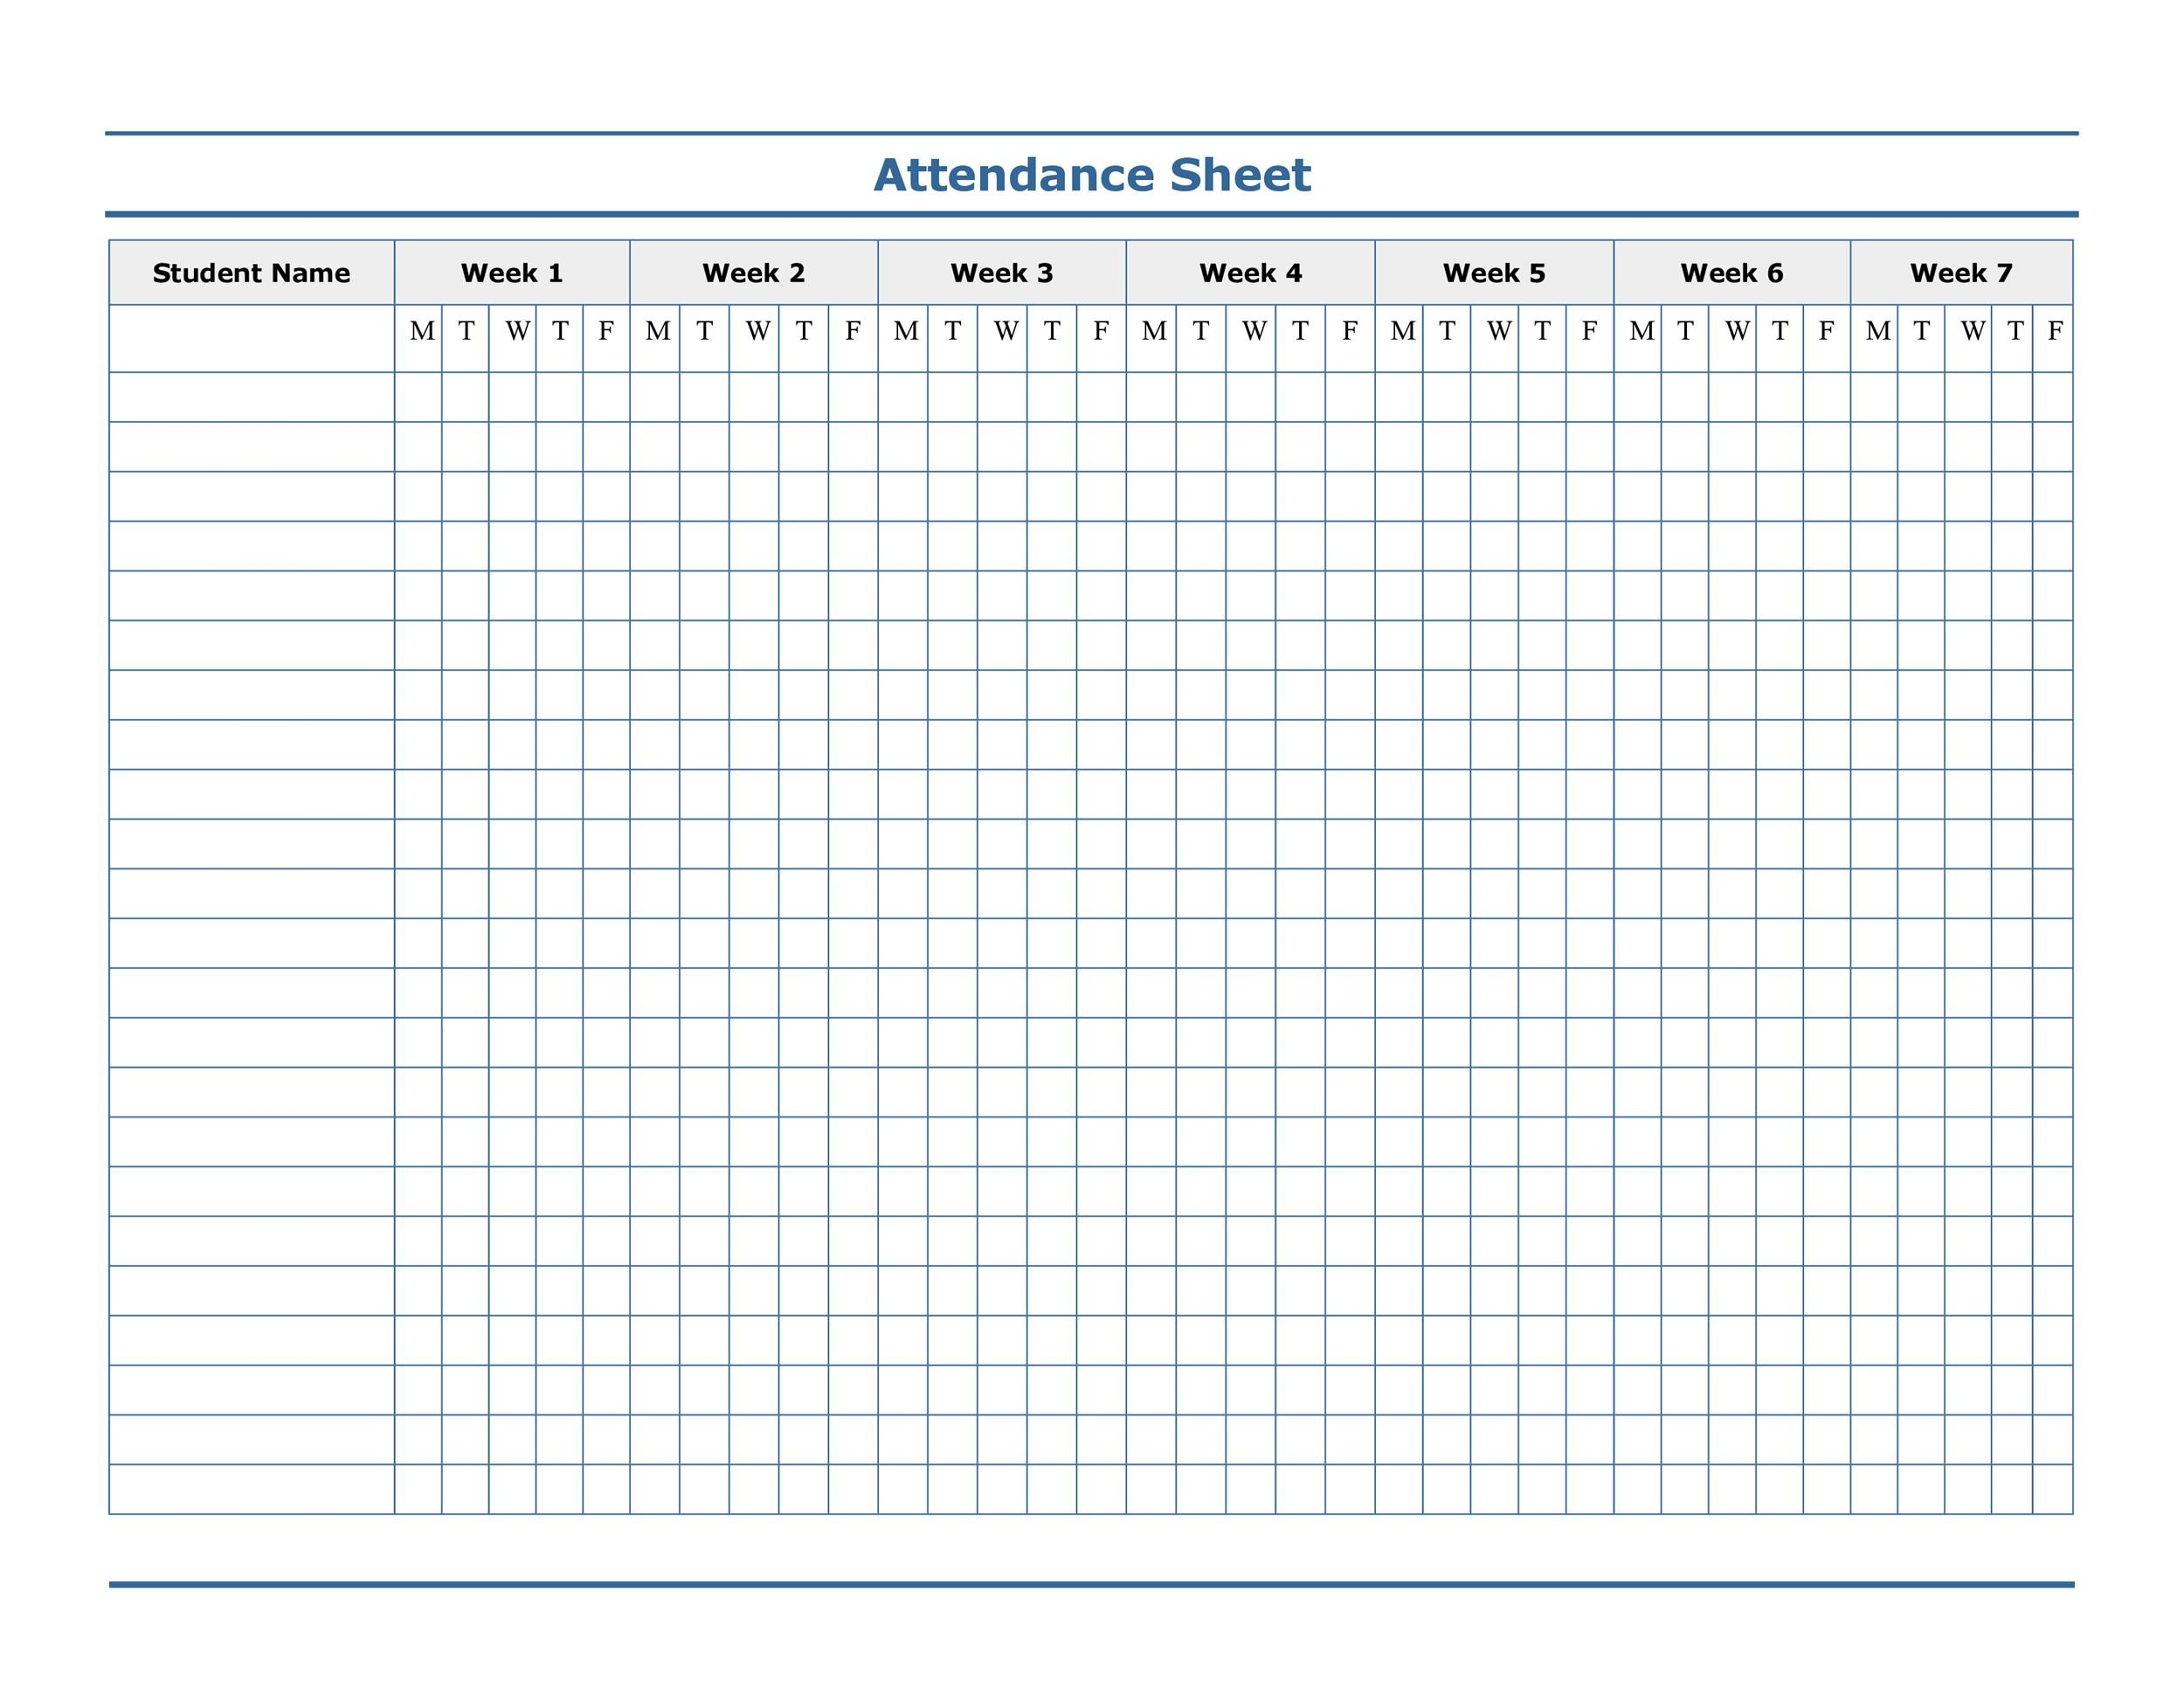 Awesome Printable Attendance Sheet 40 Ideas Printable Attendance Sheet For Teachers